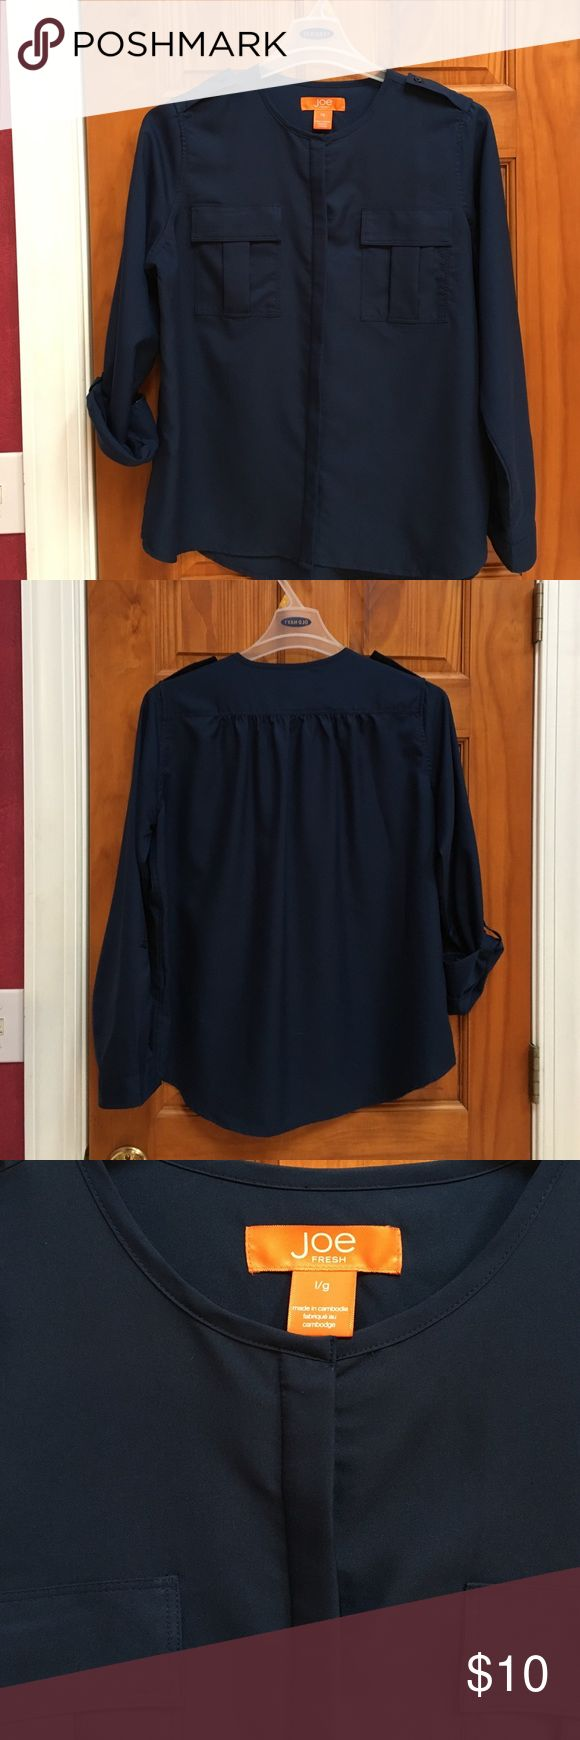 Joe Fresh basic Navy Blue long sl blouse LARGE Joe Fresh misses size Large navy blue blouse.  See pictures - sleeve roll up button tabs or buttoned cuffs.  Placket pockets on front with hidden buttons down front.  Collarless with shoulder button placket. Joe Fresh Tops Blouses